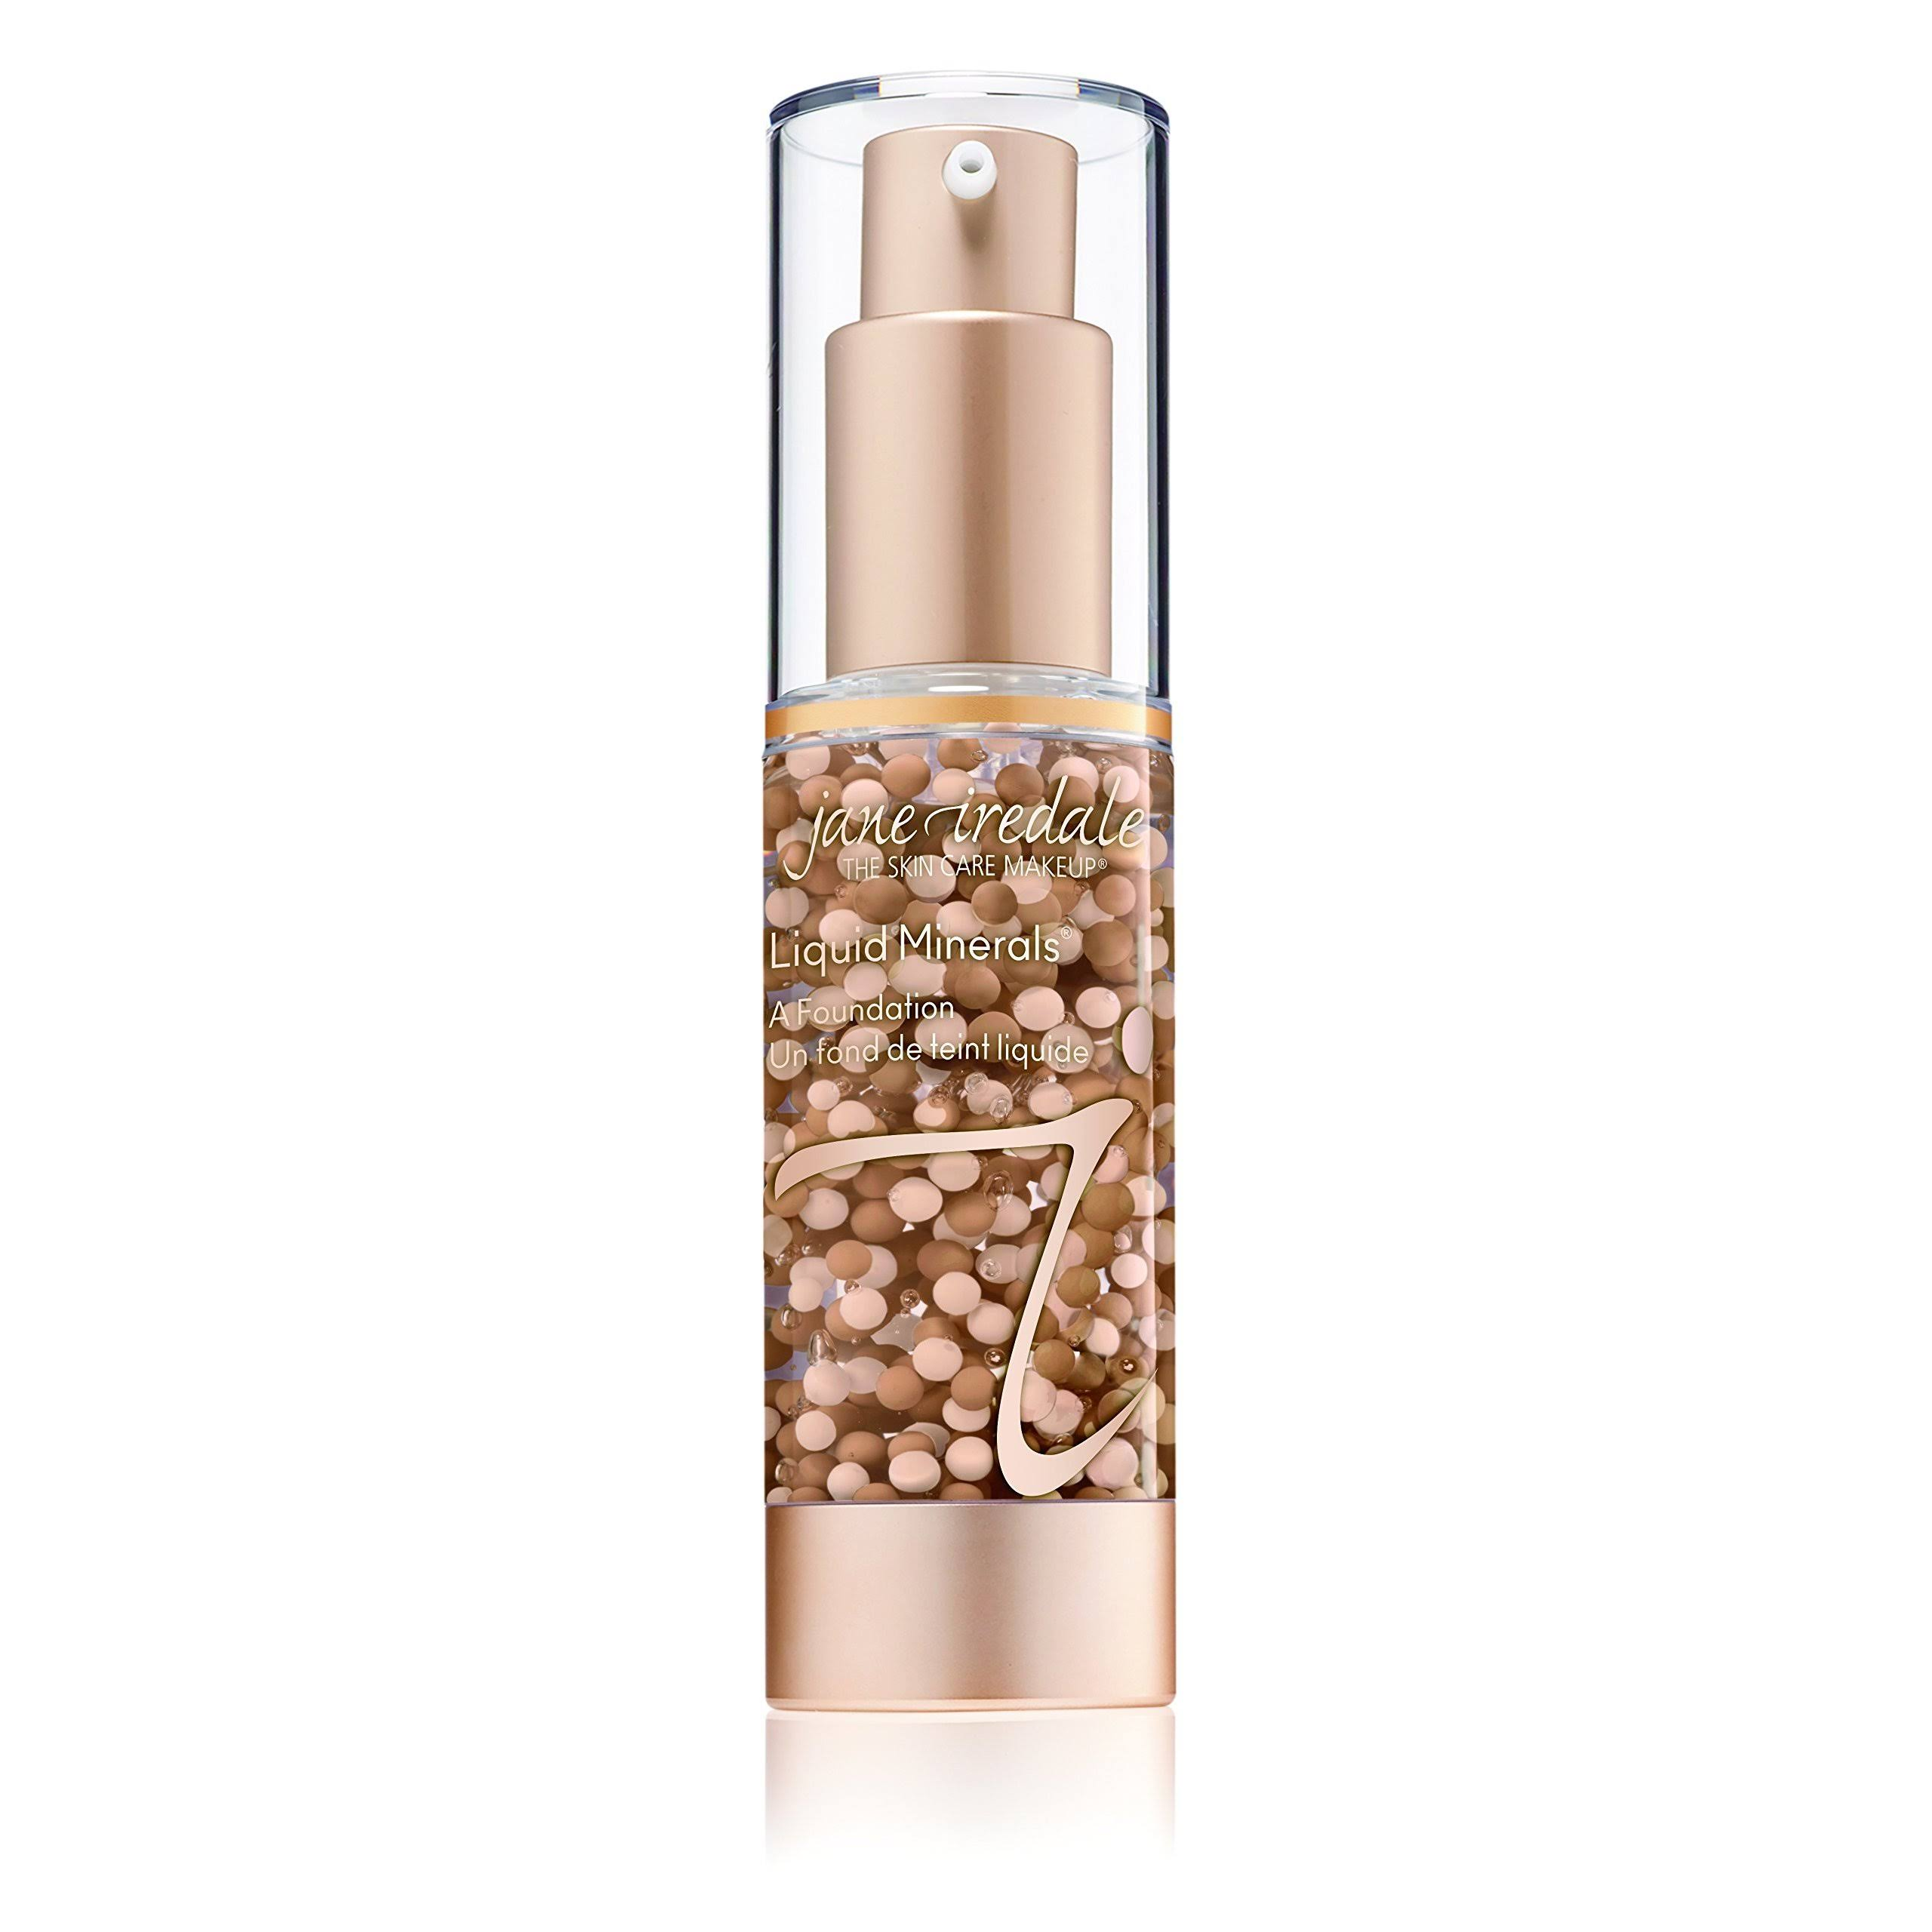 jane iredale Liquid Minerals A Foundation - Natural, 1.01oz